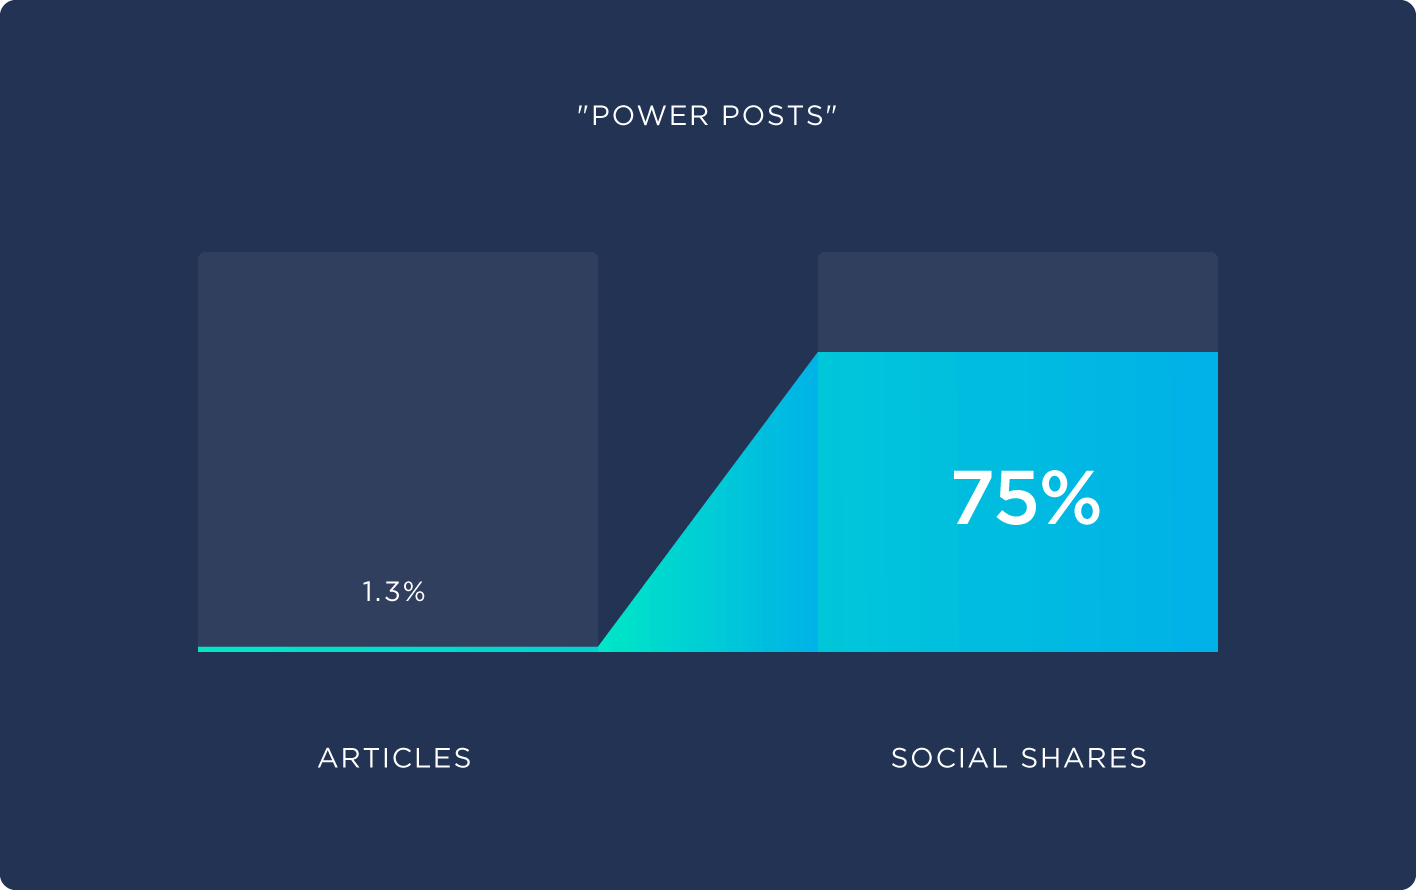 Shares given to 'Power posts'